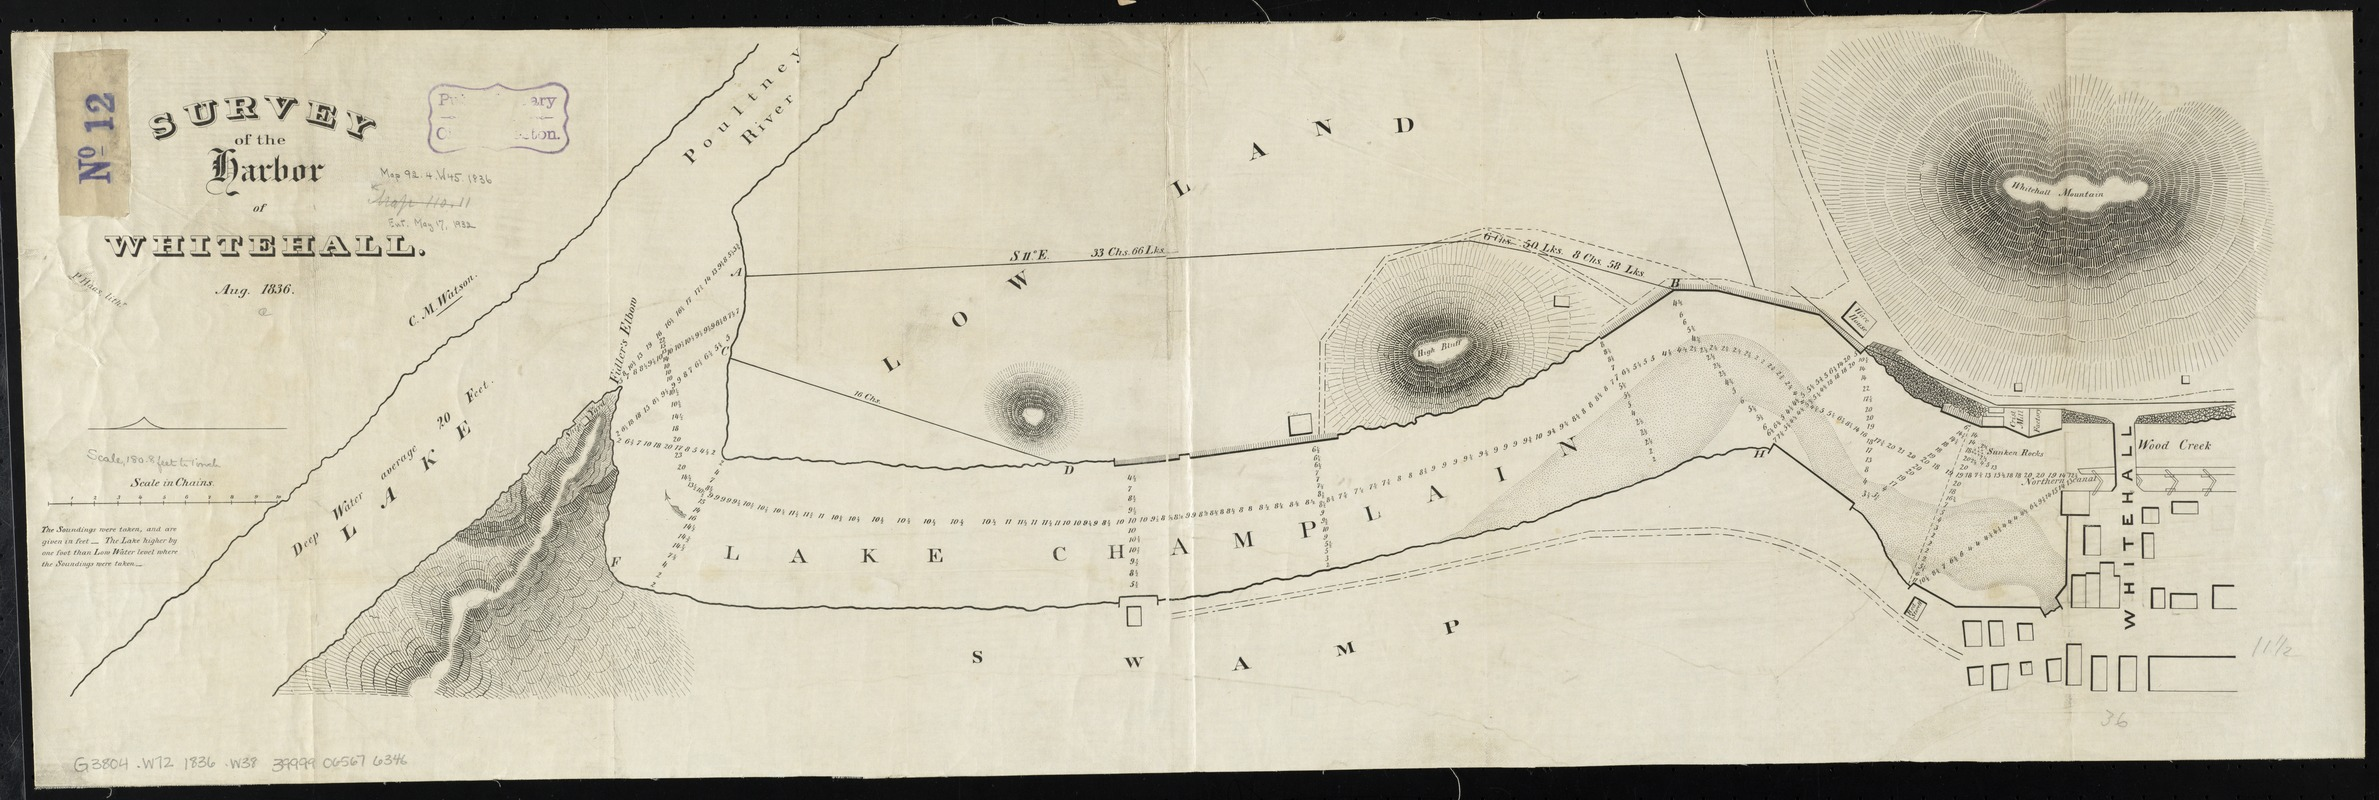 Survey of the harbor of Whitehall